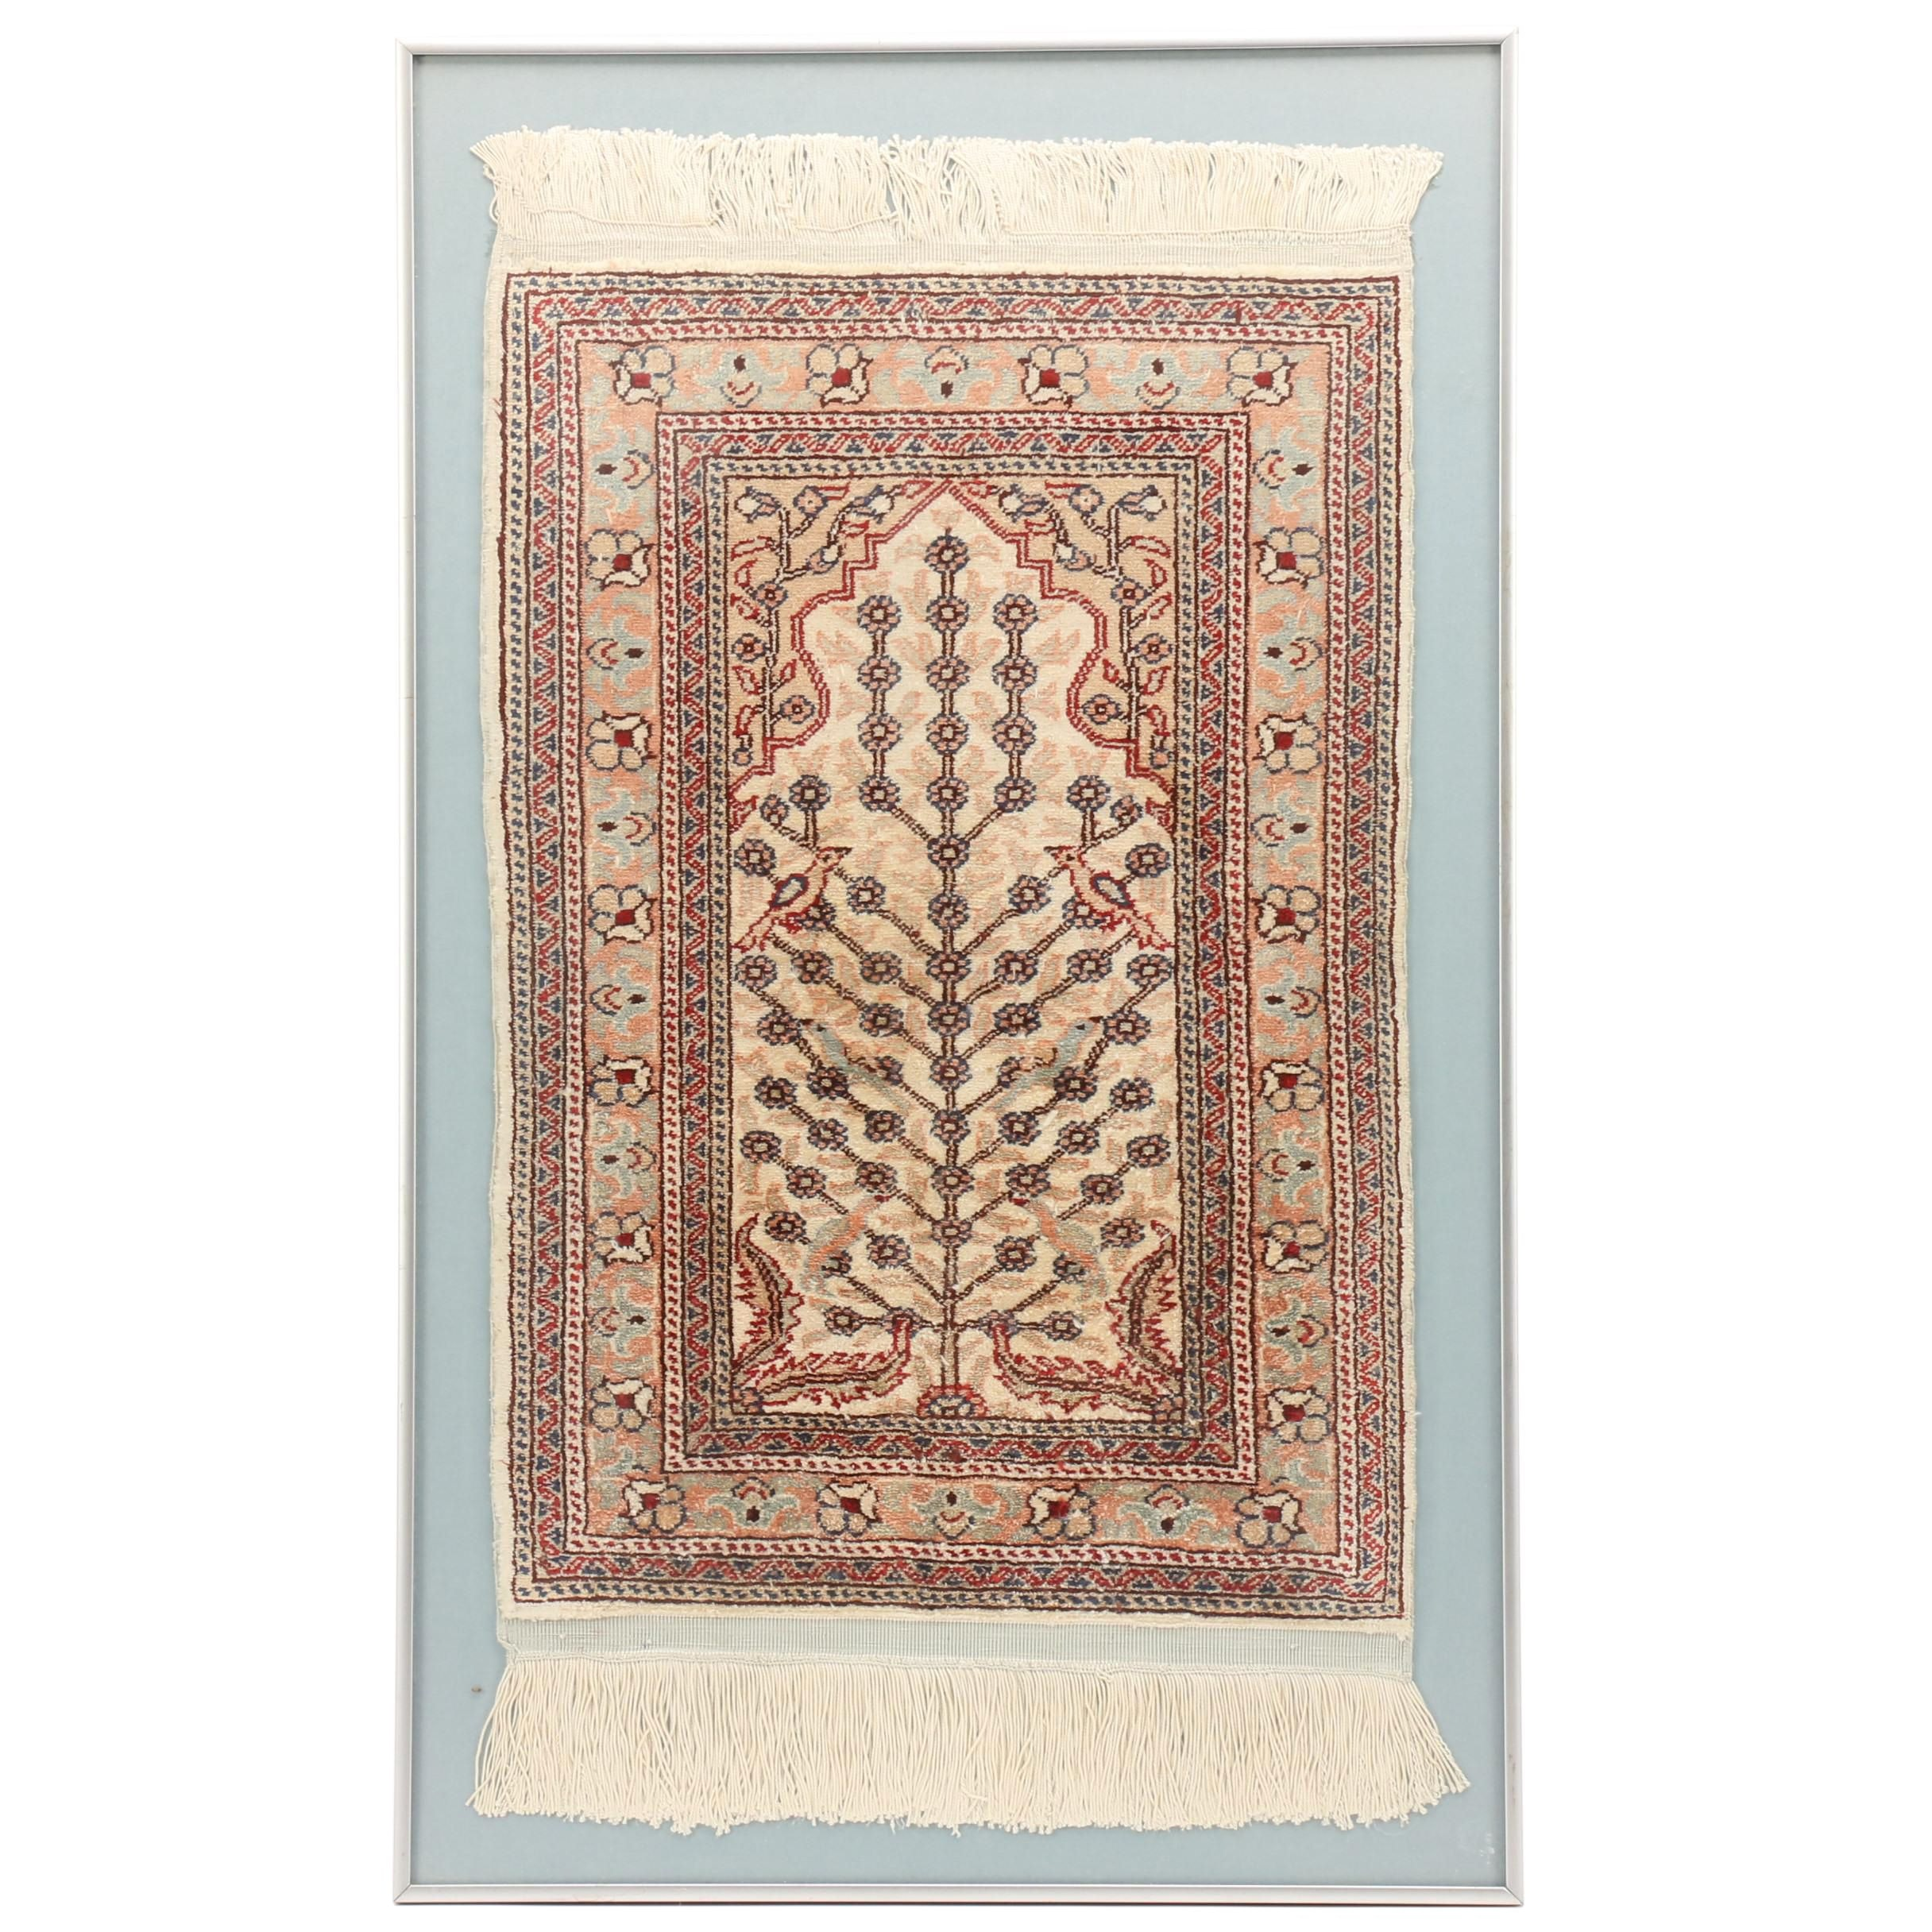 "Framed Hand-Knotted Silk ""Tree of Life"" Prayer Rug"